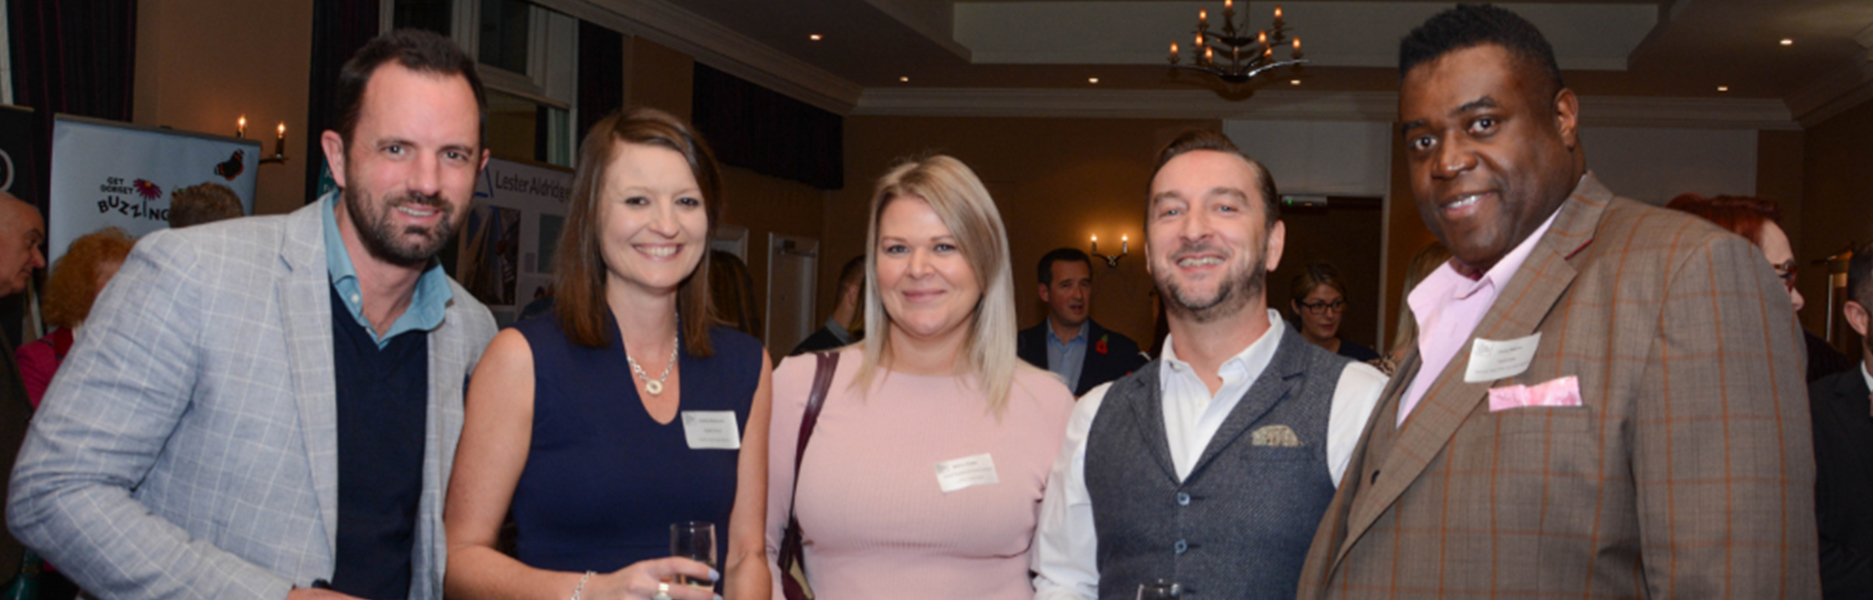 Digital Storm attend Dorset Business Awards 2019 'Meet the Finalists' reception